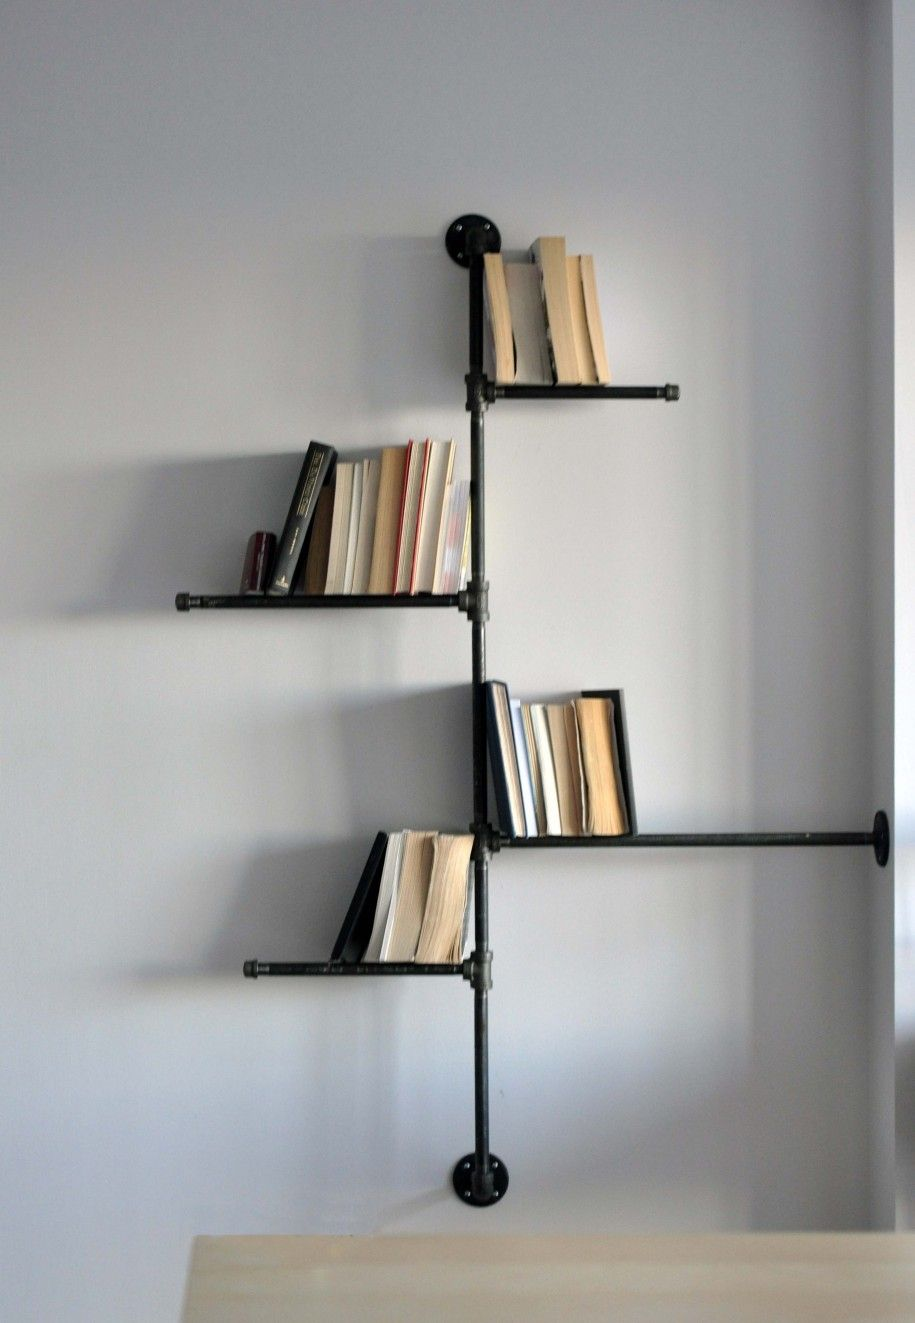 Furniture Living Room Cool Larklinen Wall Books Shelves With Black Metal  Pipe For Amazing Living Room Design Elegant And Coolest Wall Shelves Design  Ideas ...